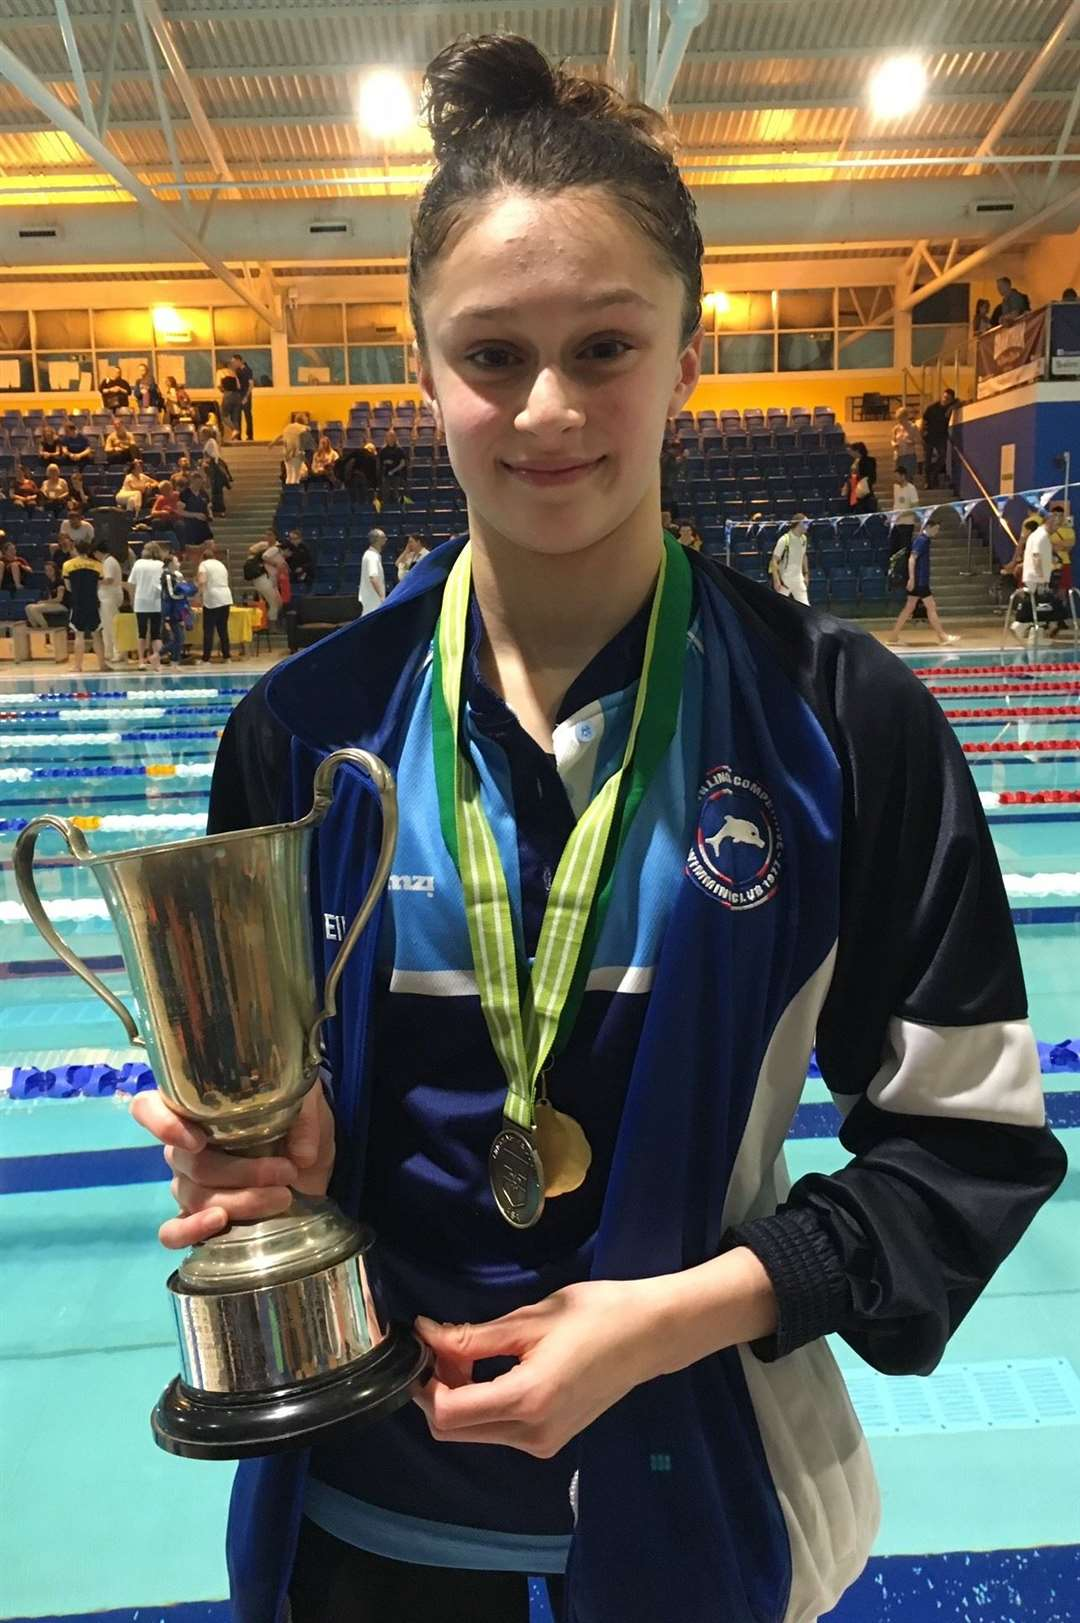 South Lincs Competitive Swimming Club gold medallists in the girls' 200m breaststroke Ellisha Cookson.Photo supplied.